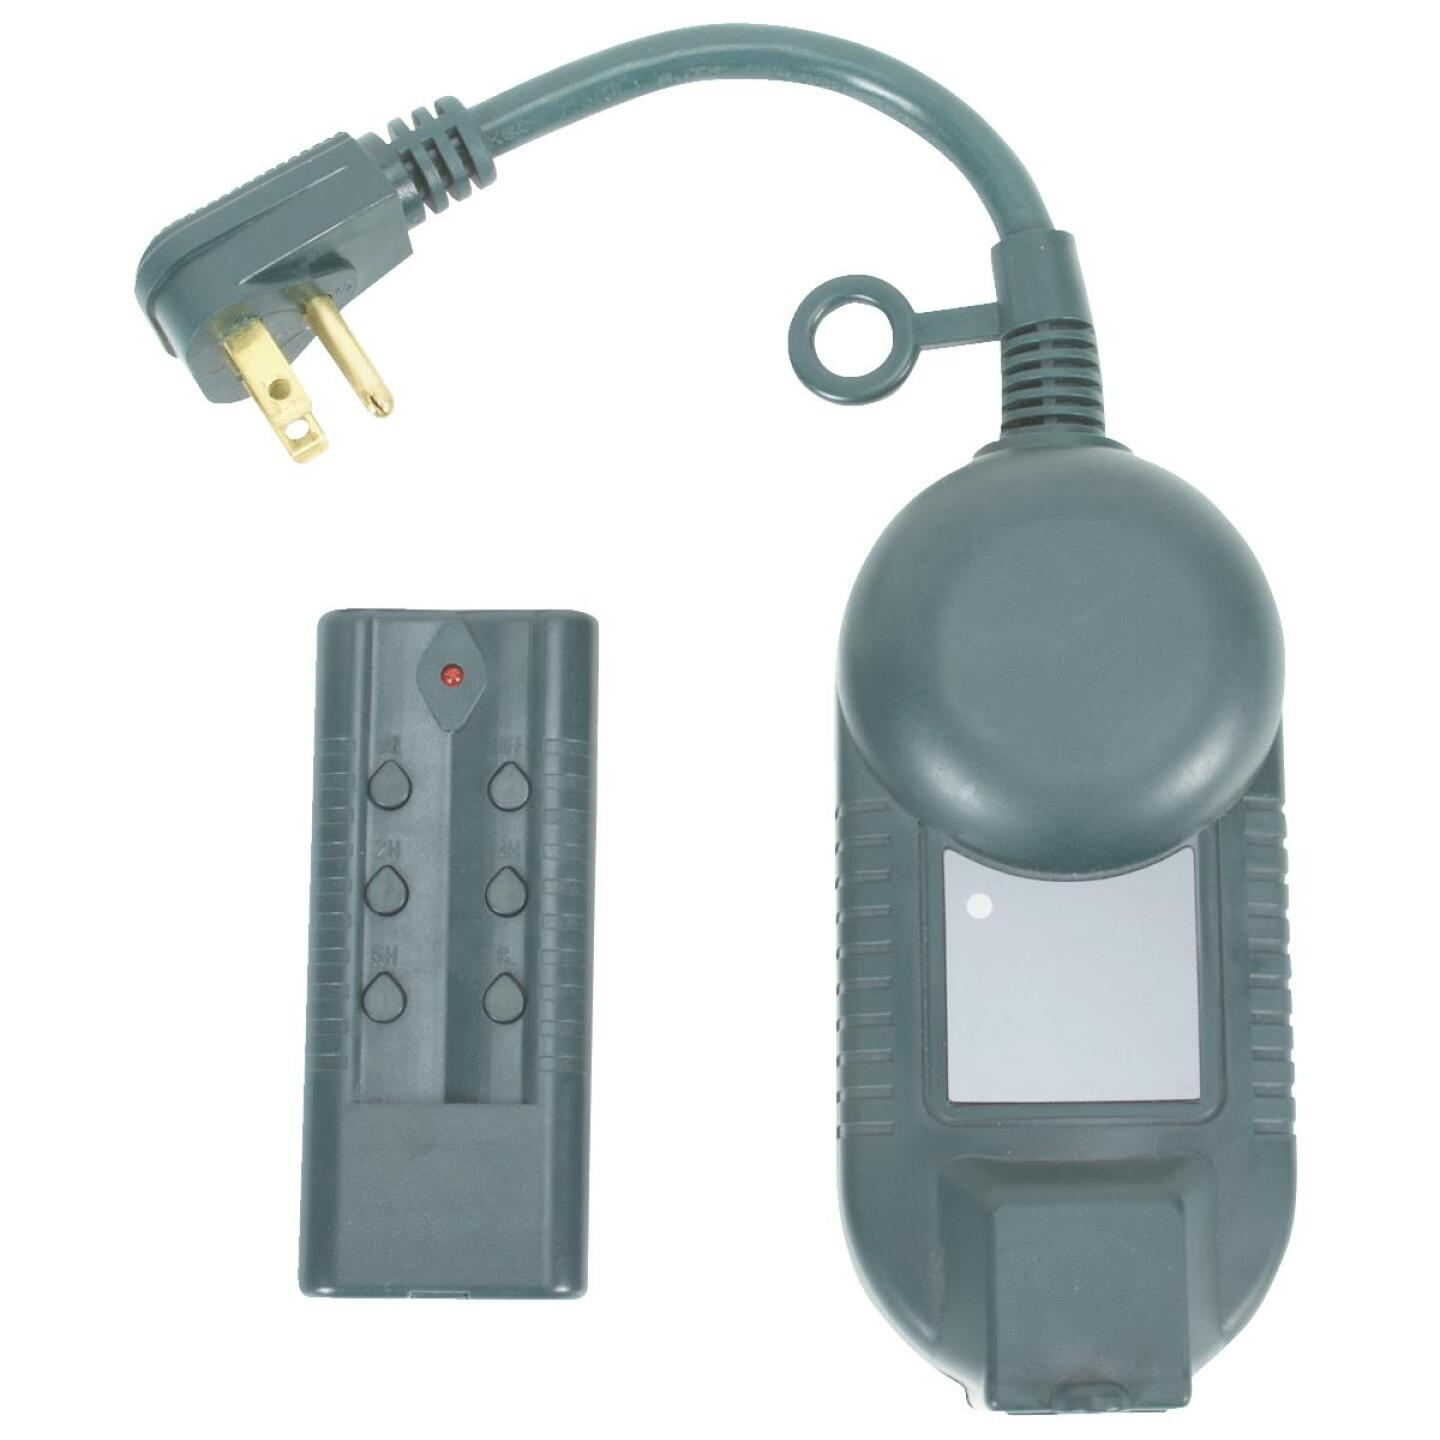 Do it 12.5A 120V 1500W Green Outdoor Timer with Remote Image 3